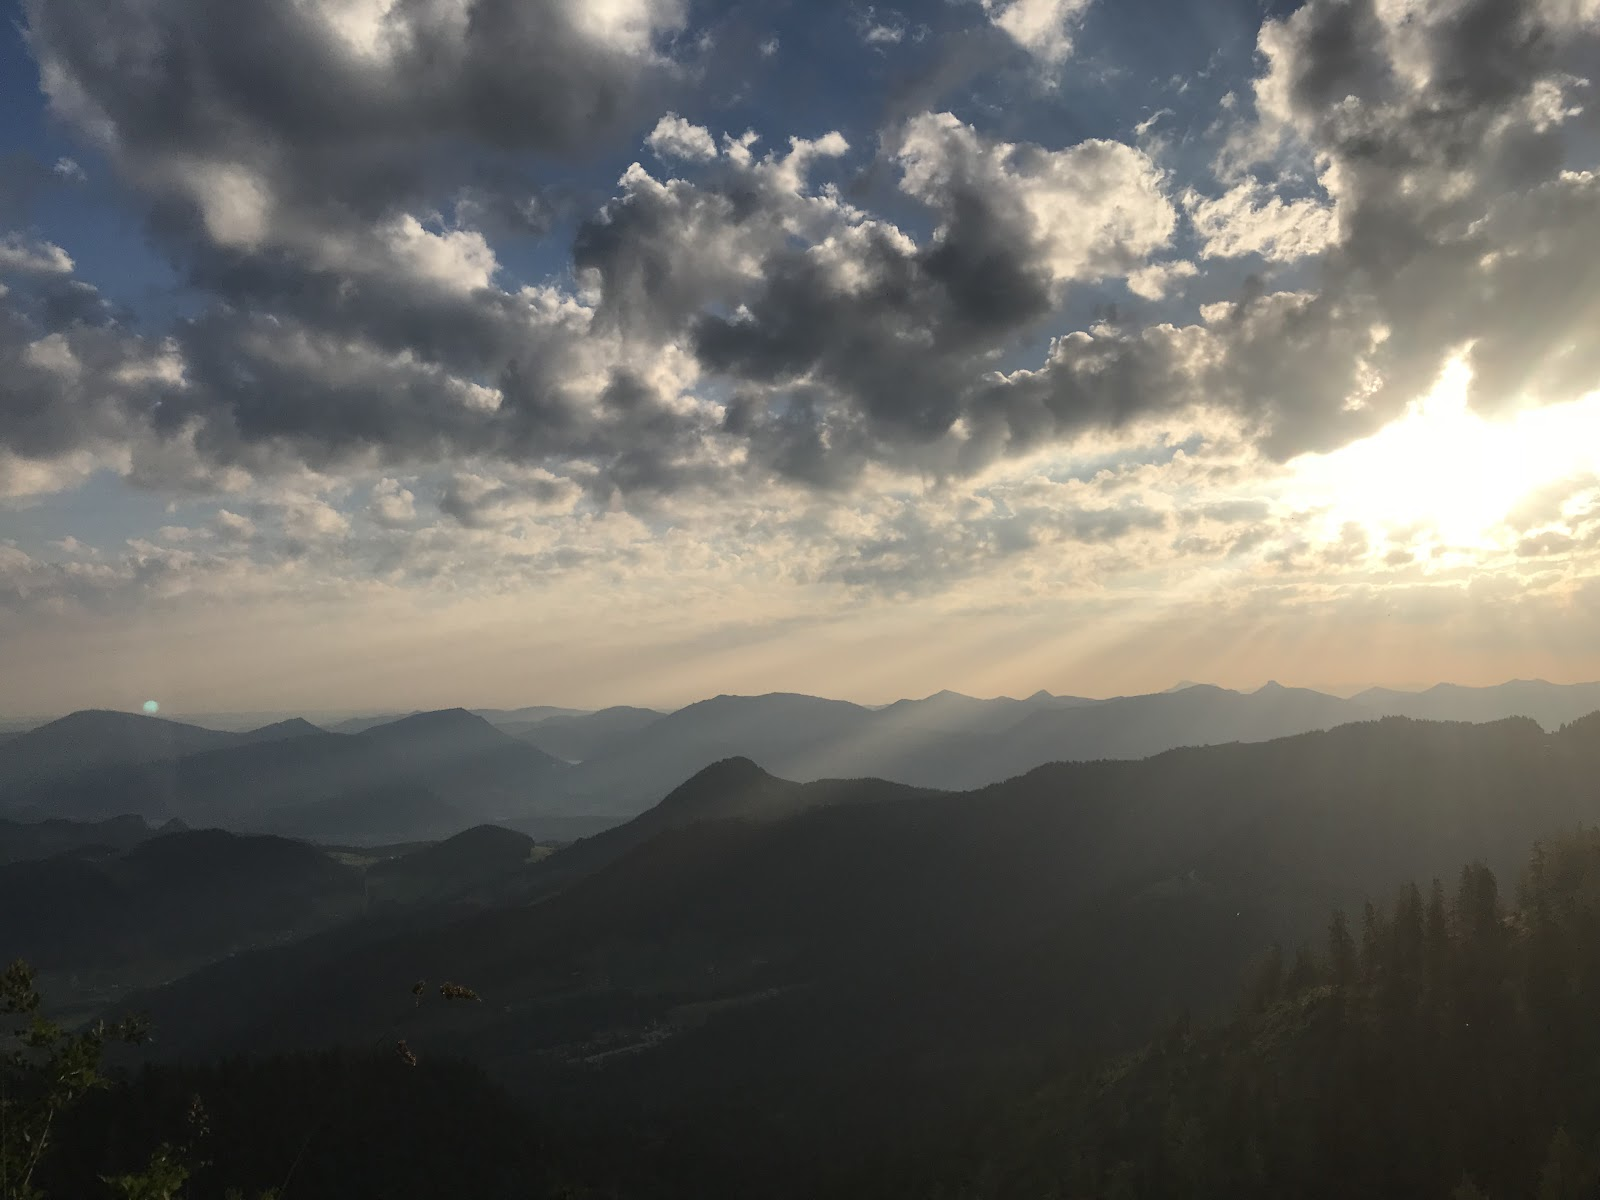 Cycling Kehlsteinhaus - Eagles Nest - sunrise and mountains